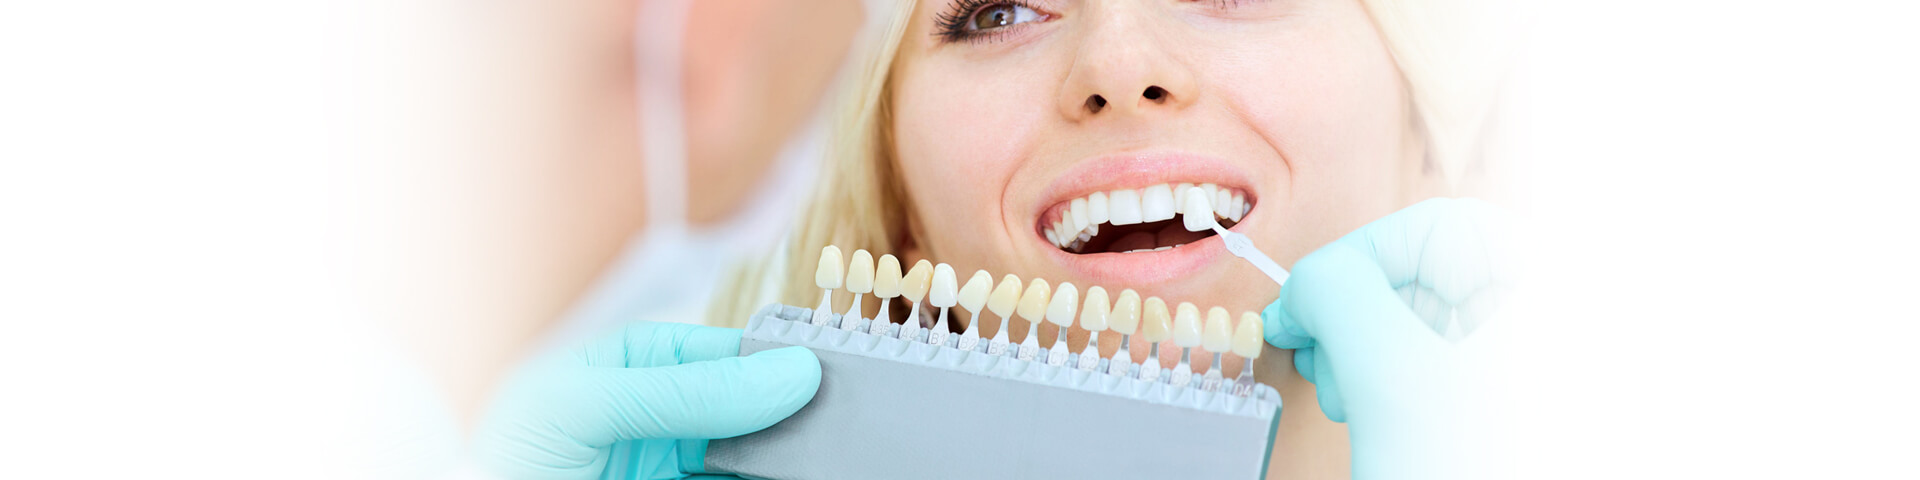 How to Decide if Dental Veneers are the Right Choice For You